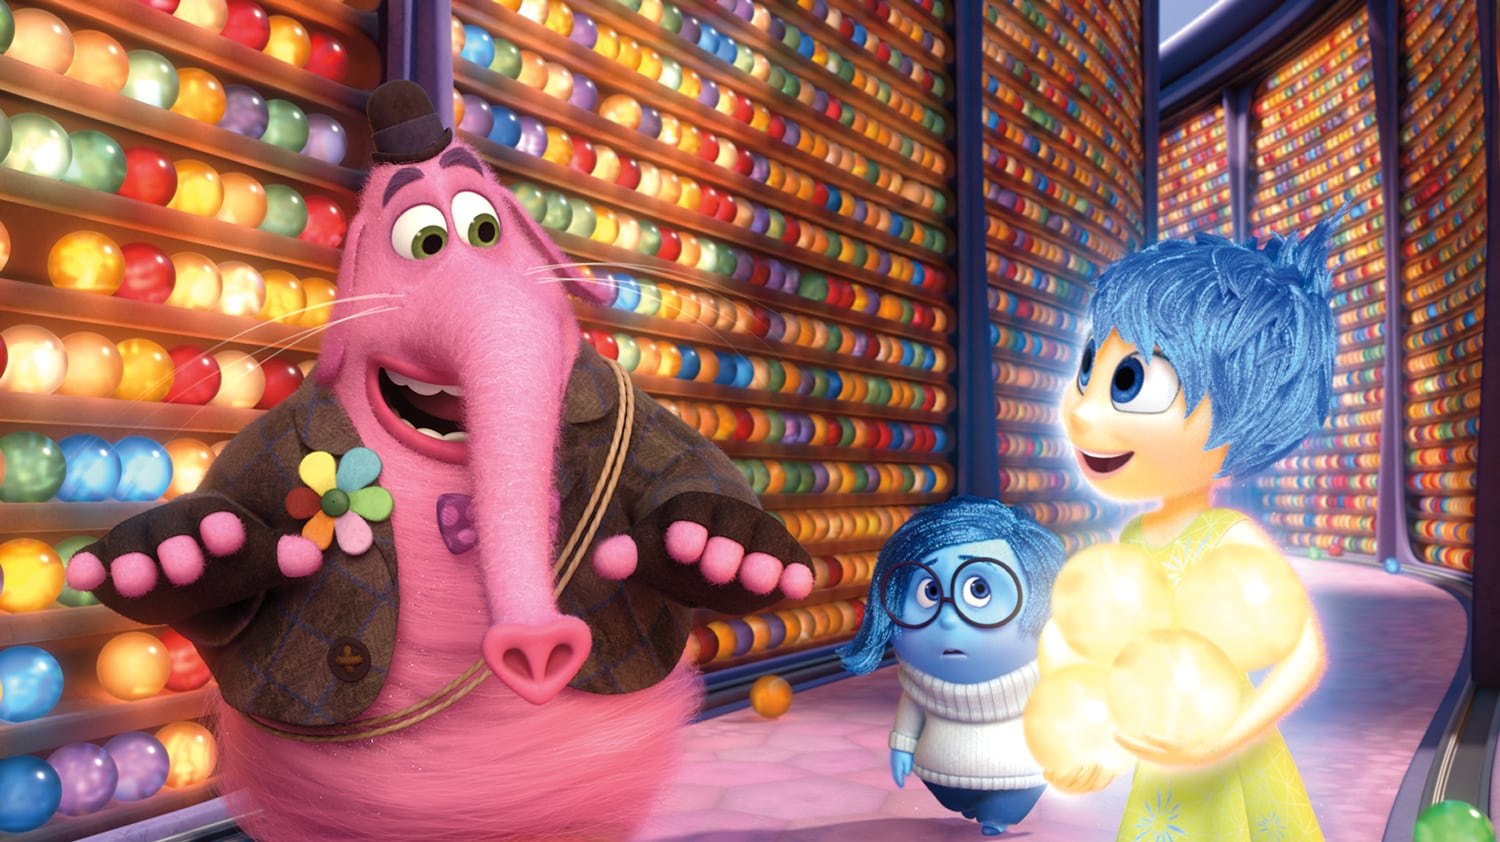 Actors Richard Kind as Bing Bong, Phyllis Smith as Sadness, and Amy Poehler as Joy in the movie Inside Out